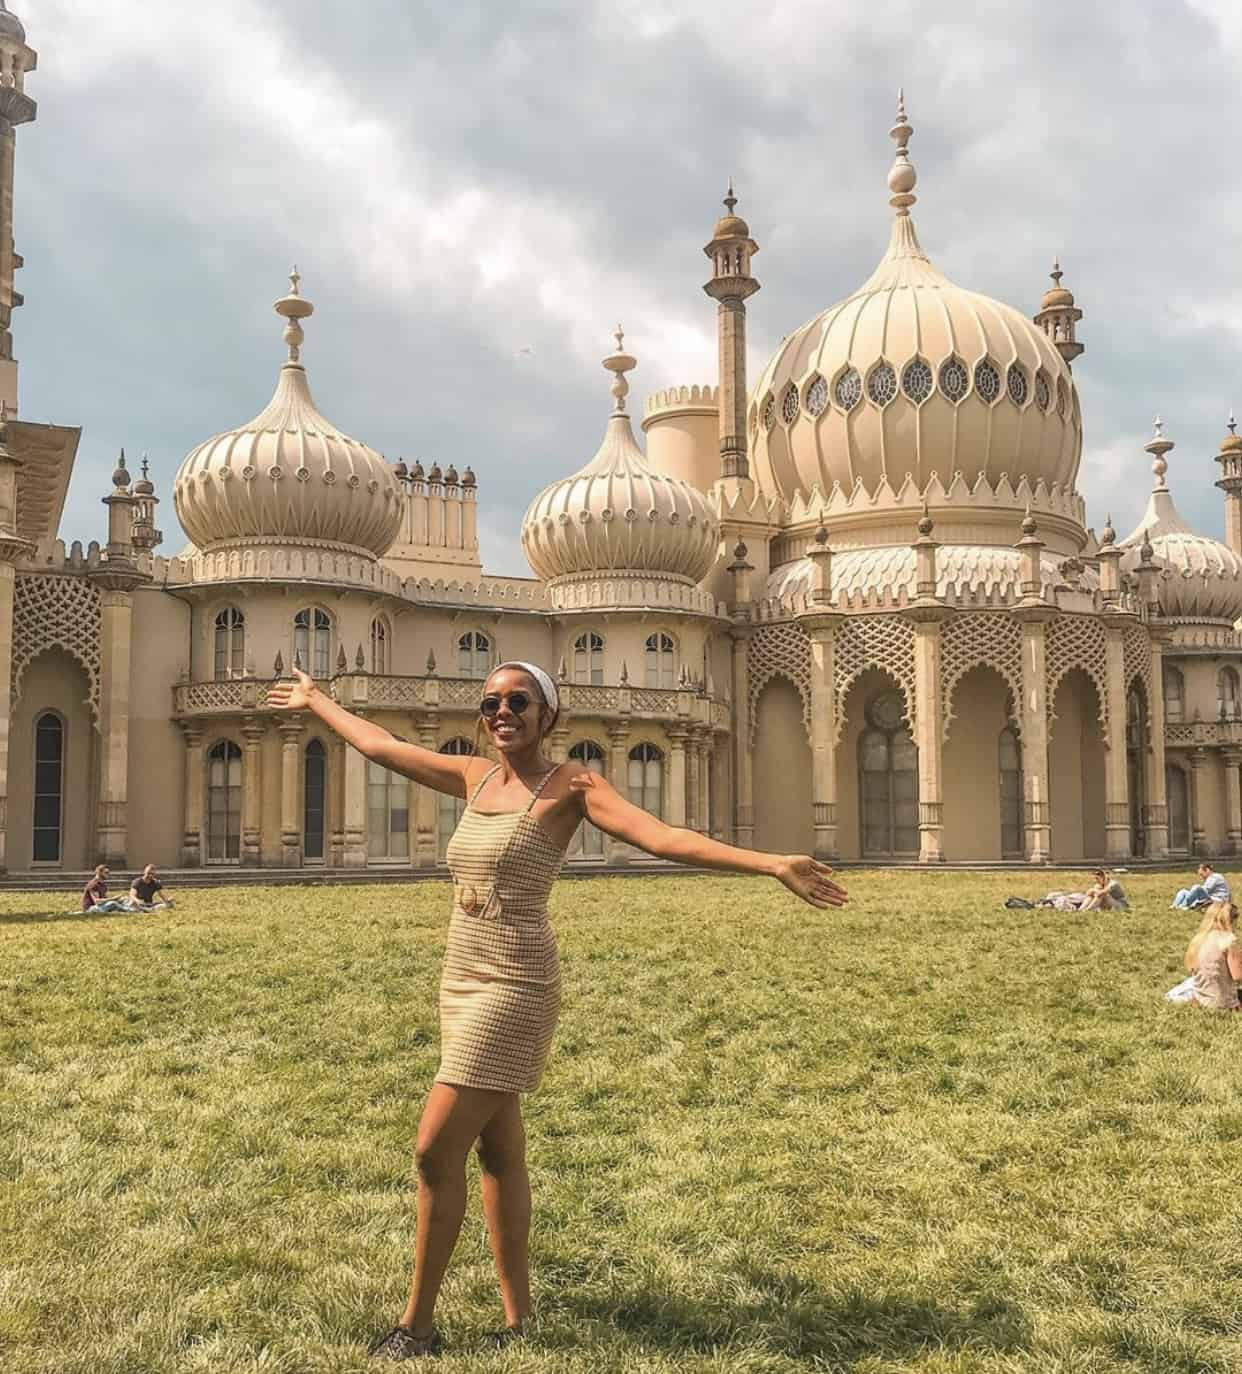 Candace at Brighton Pavilion, Brighton, U.K - 23-years-old-woman